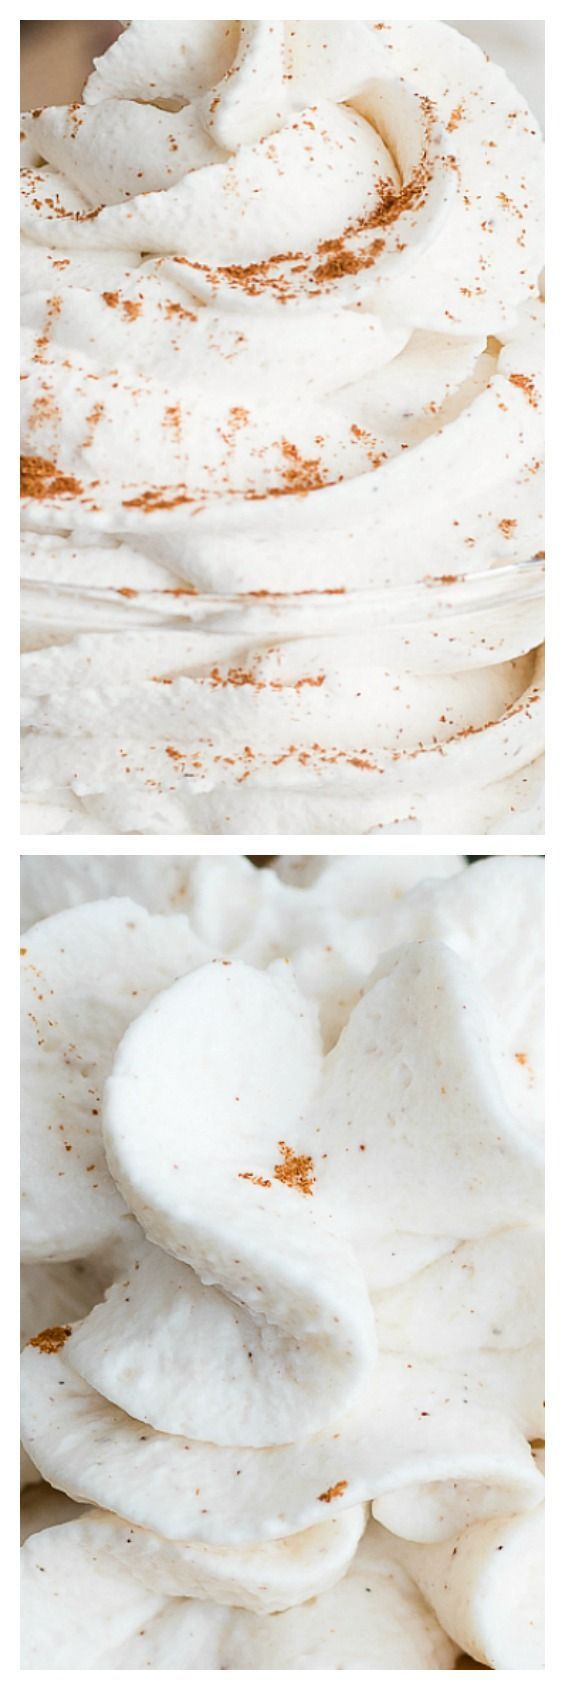 Stabilized Whip Cream #stabilizedwhippedcream Cinnamon Stabilized Whipped Cream #stabilizedwhippedcream